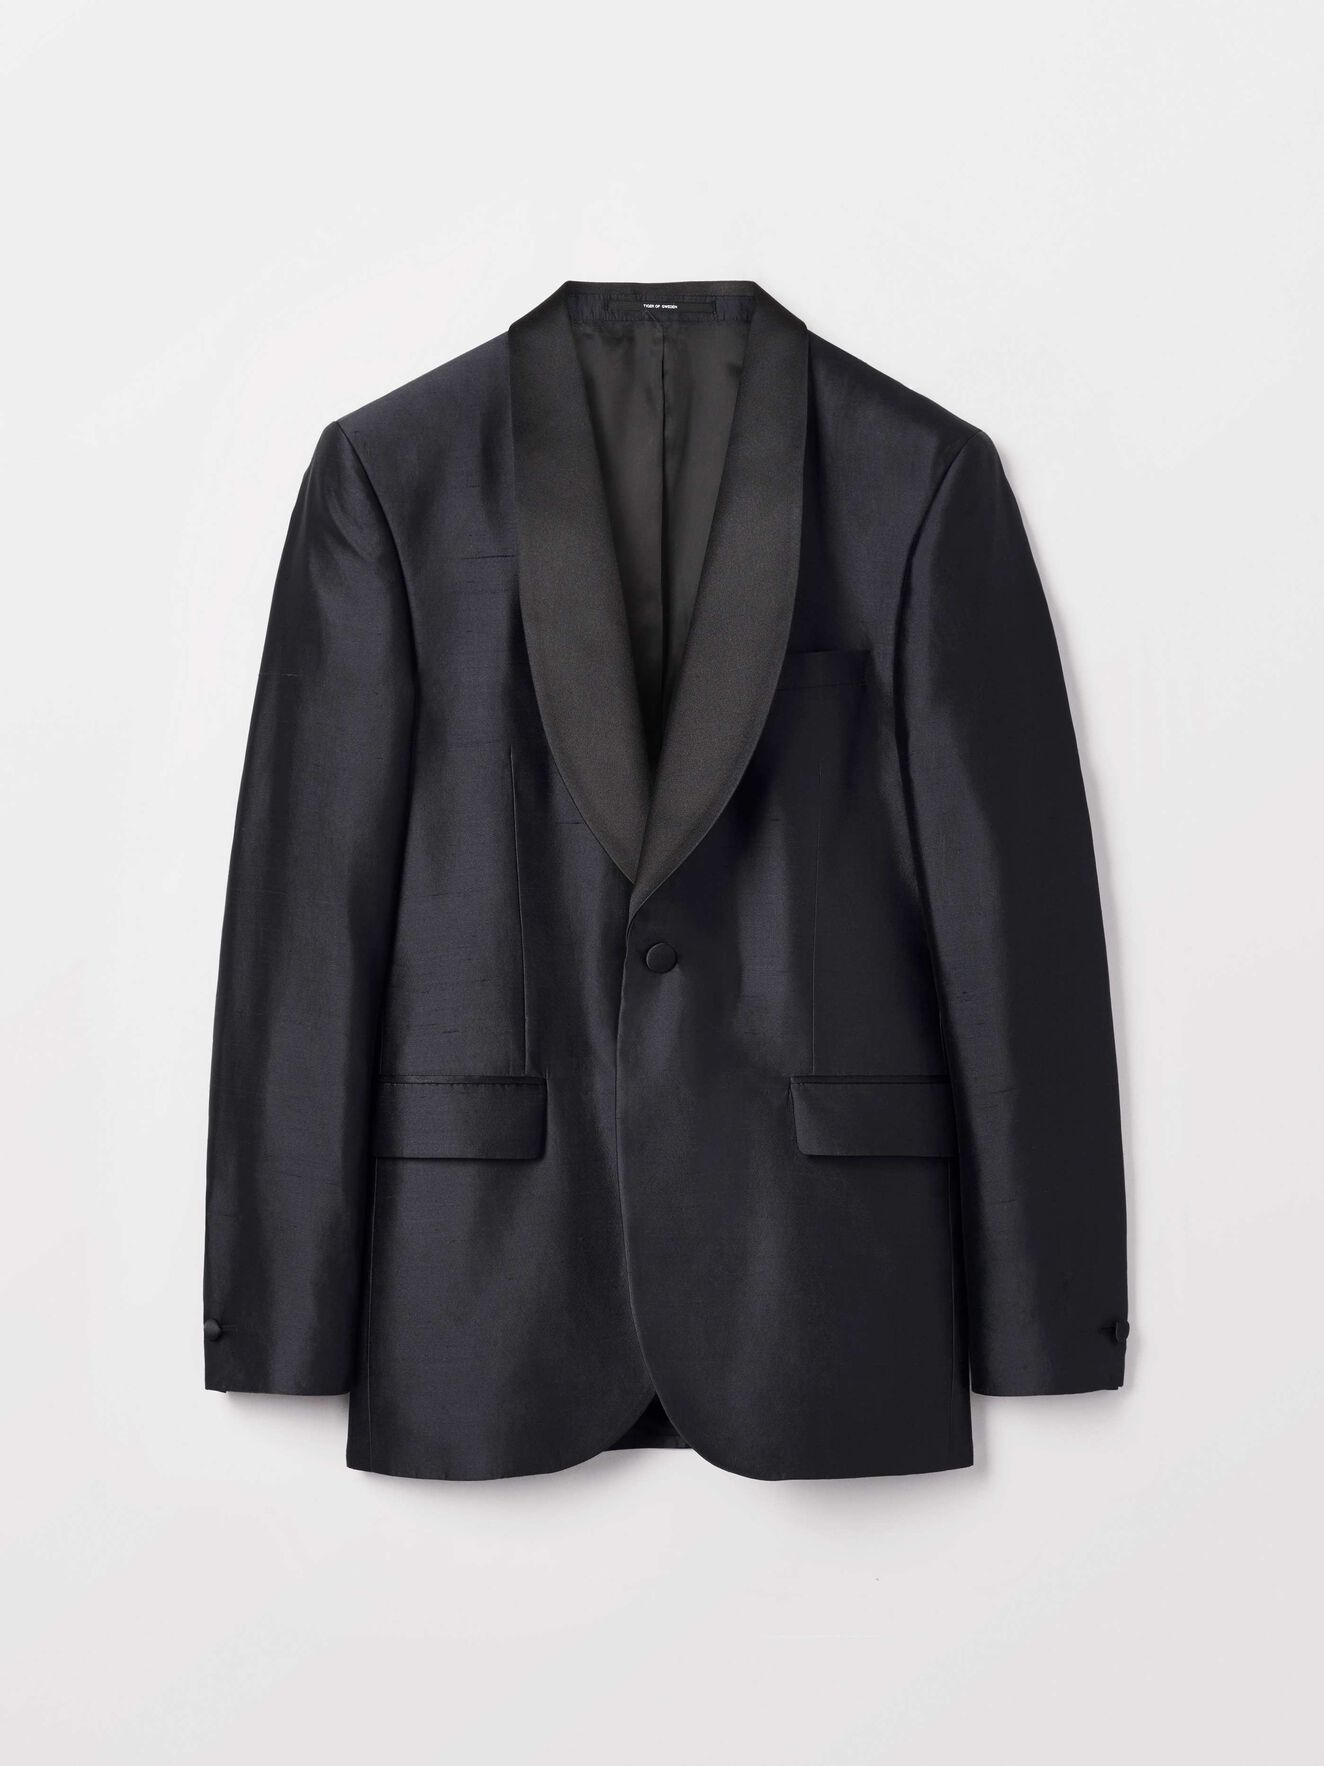 2018 Tuxedo Blazer in Royal Blue from Tiger of Sweden